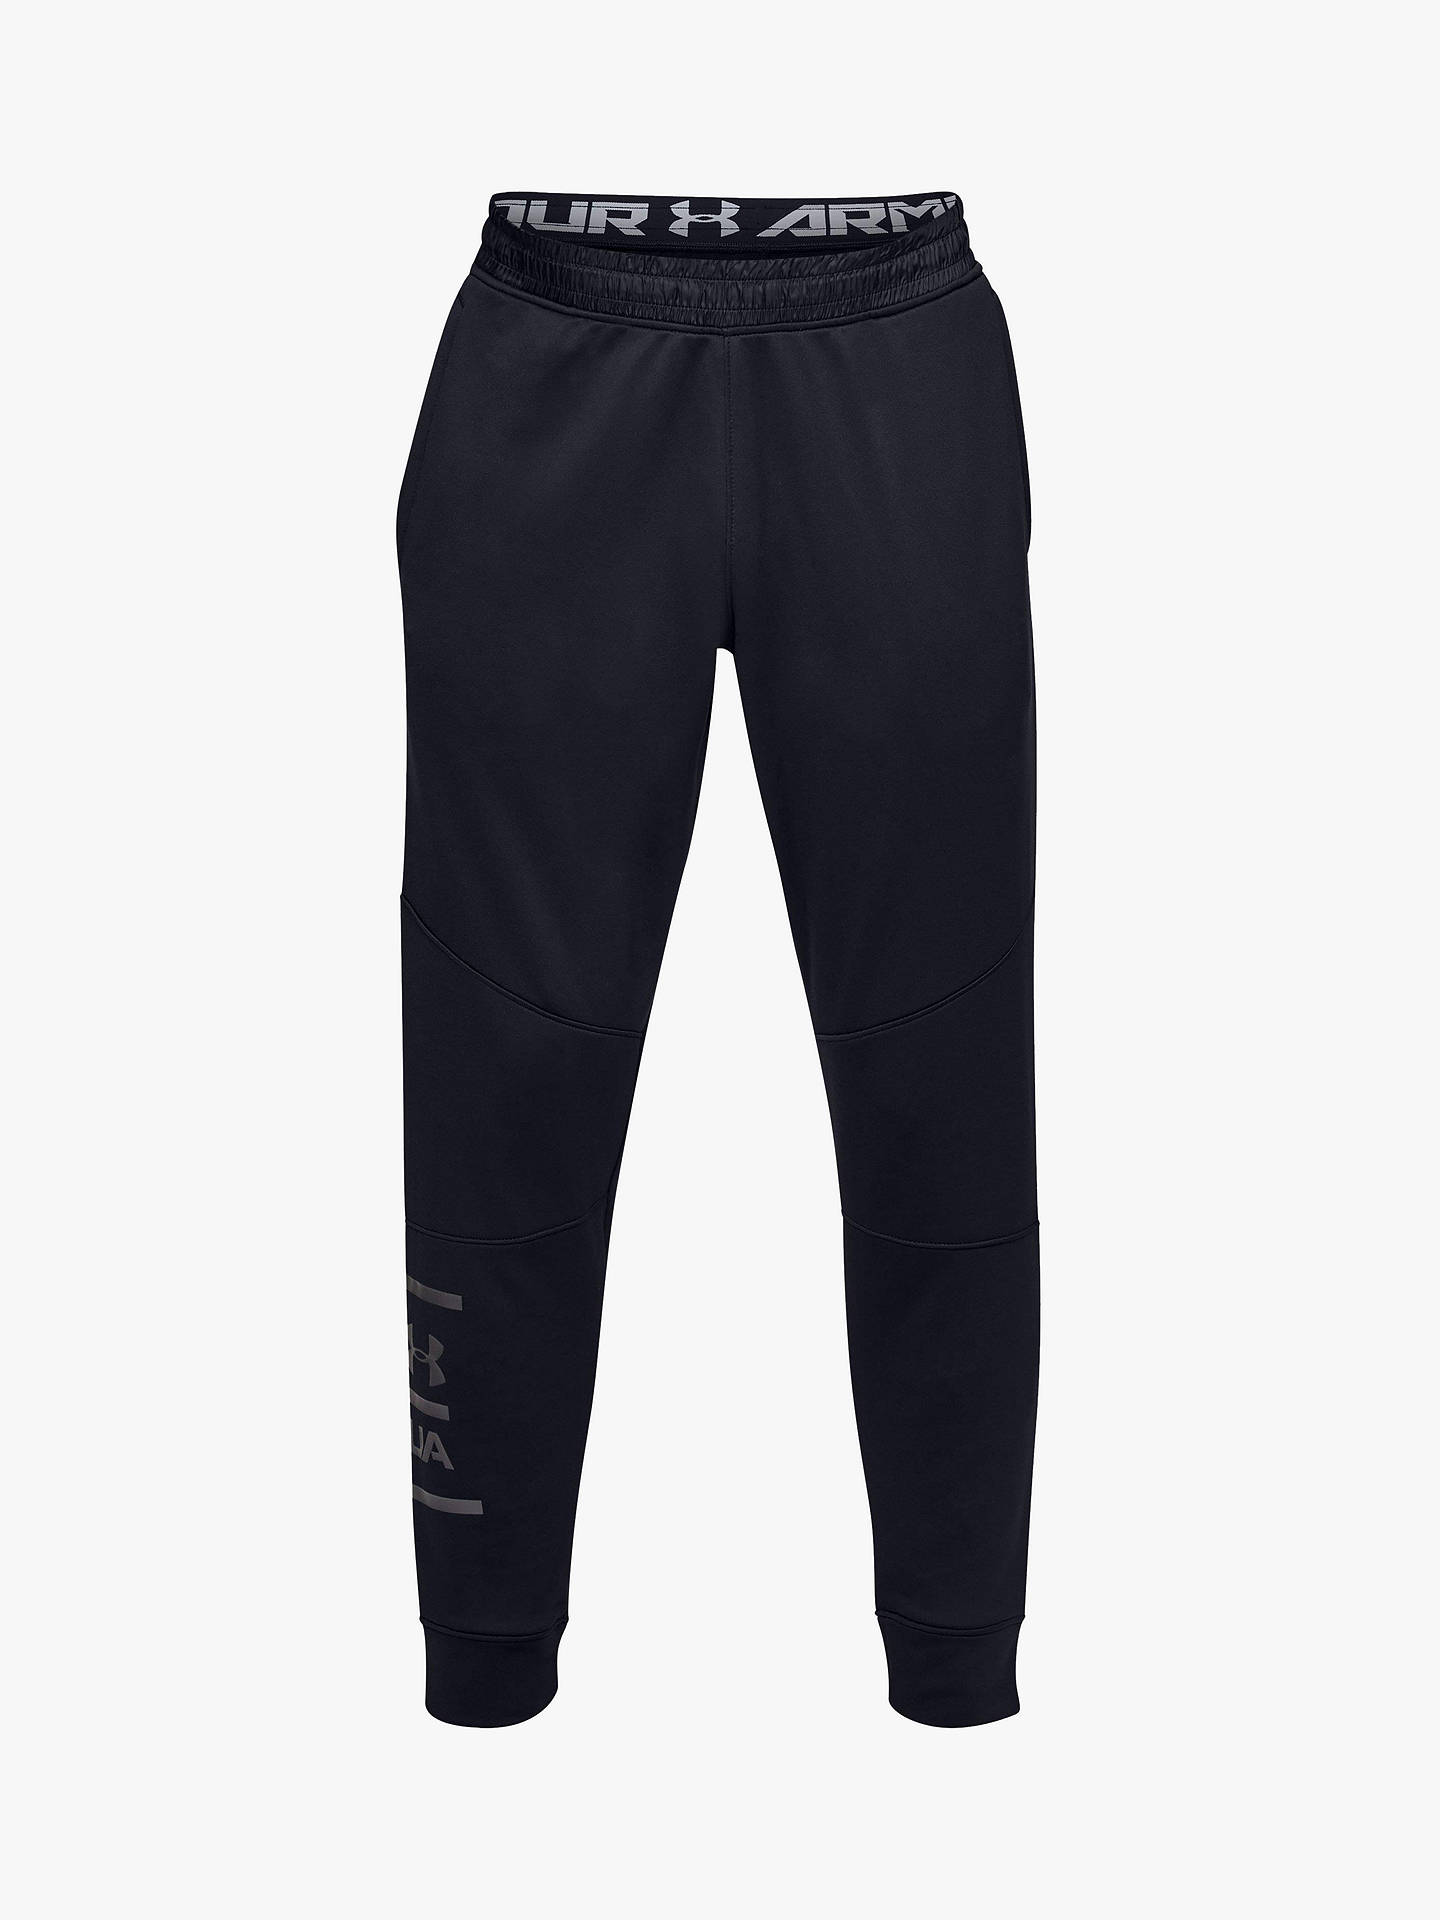 75afc206d9 Under Armour MK1 Terry Joggers, Black